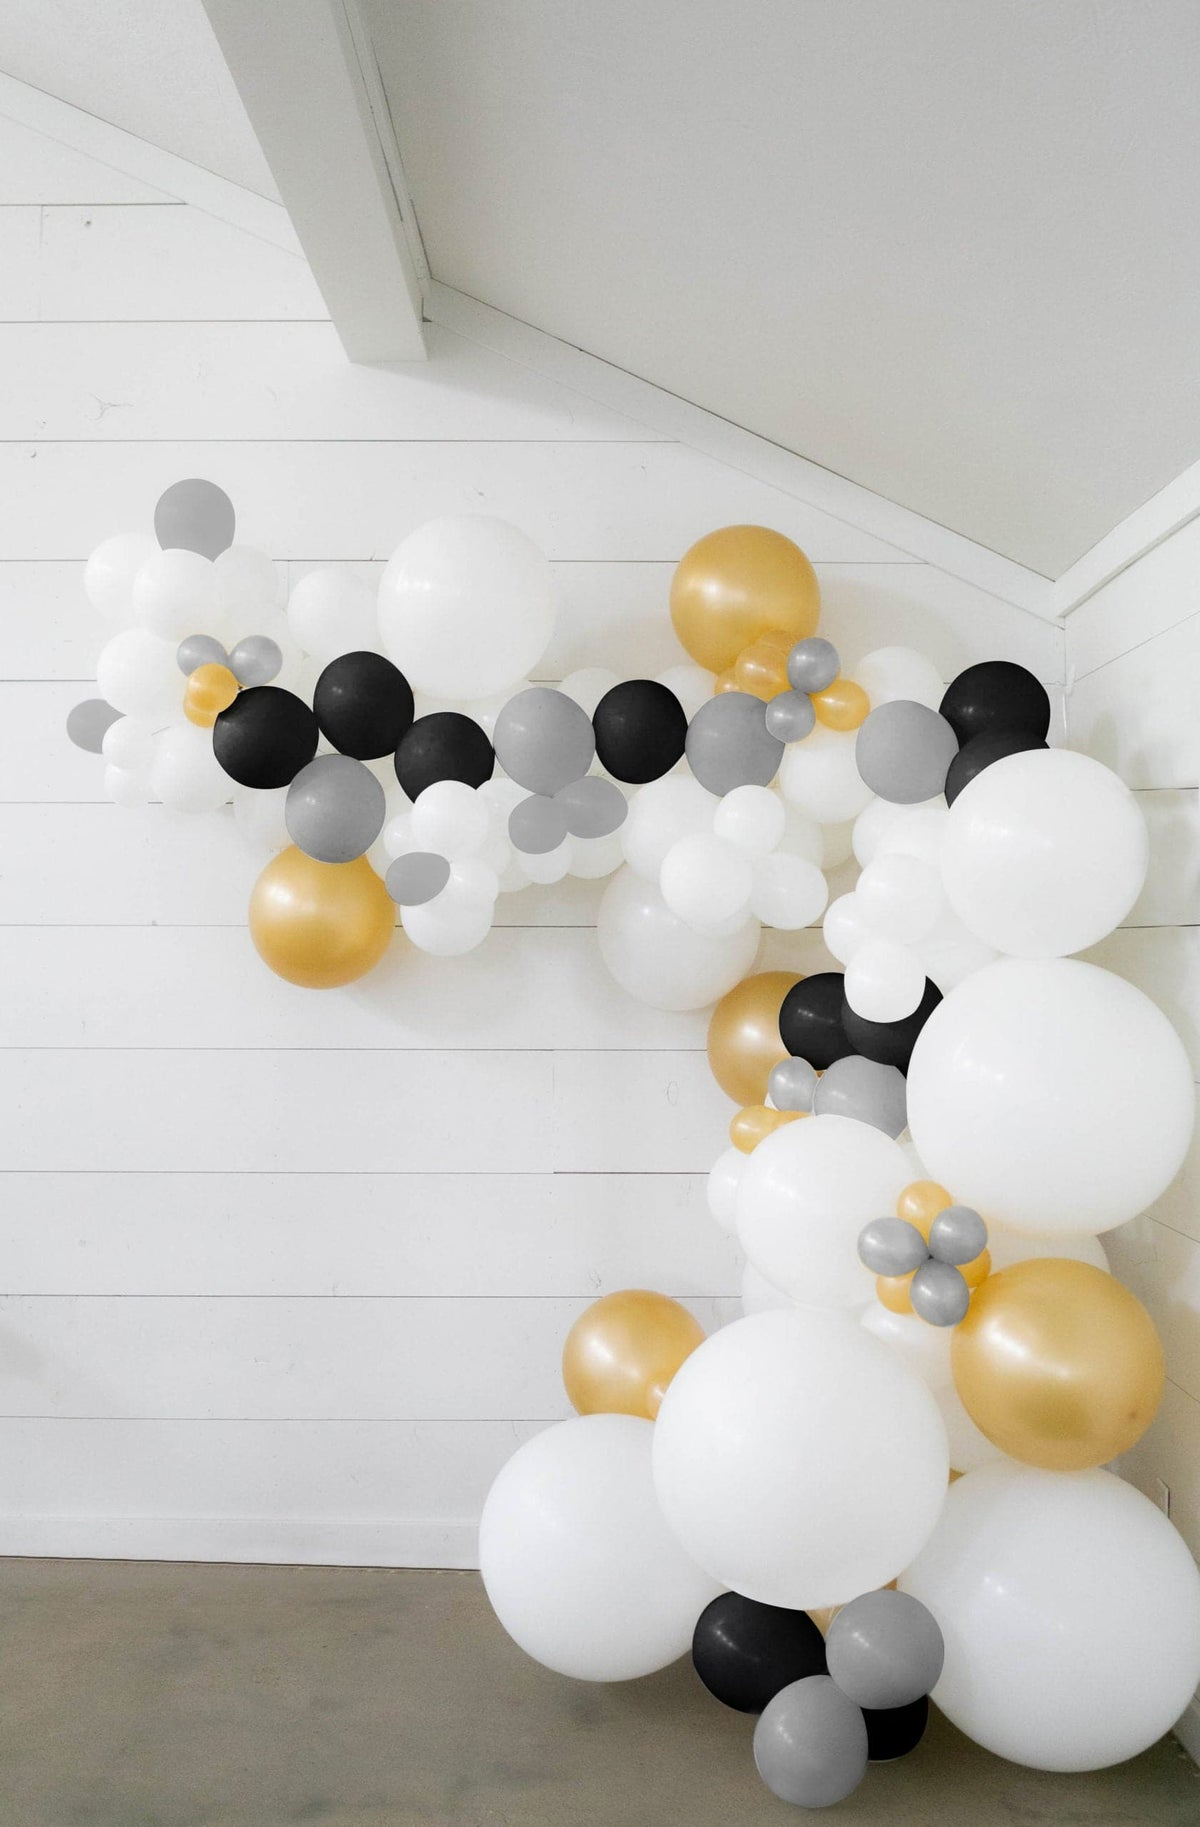 50 Ft Diy Balloon Garland Kit With White Black Gold Silver Balloon Balloons And Weights